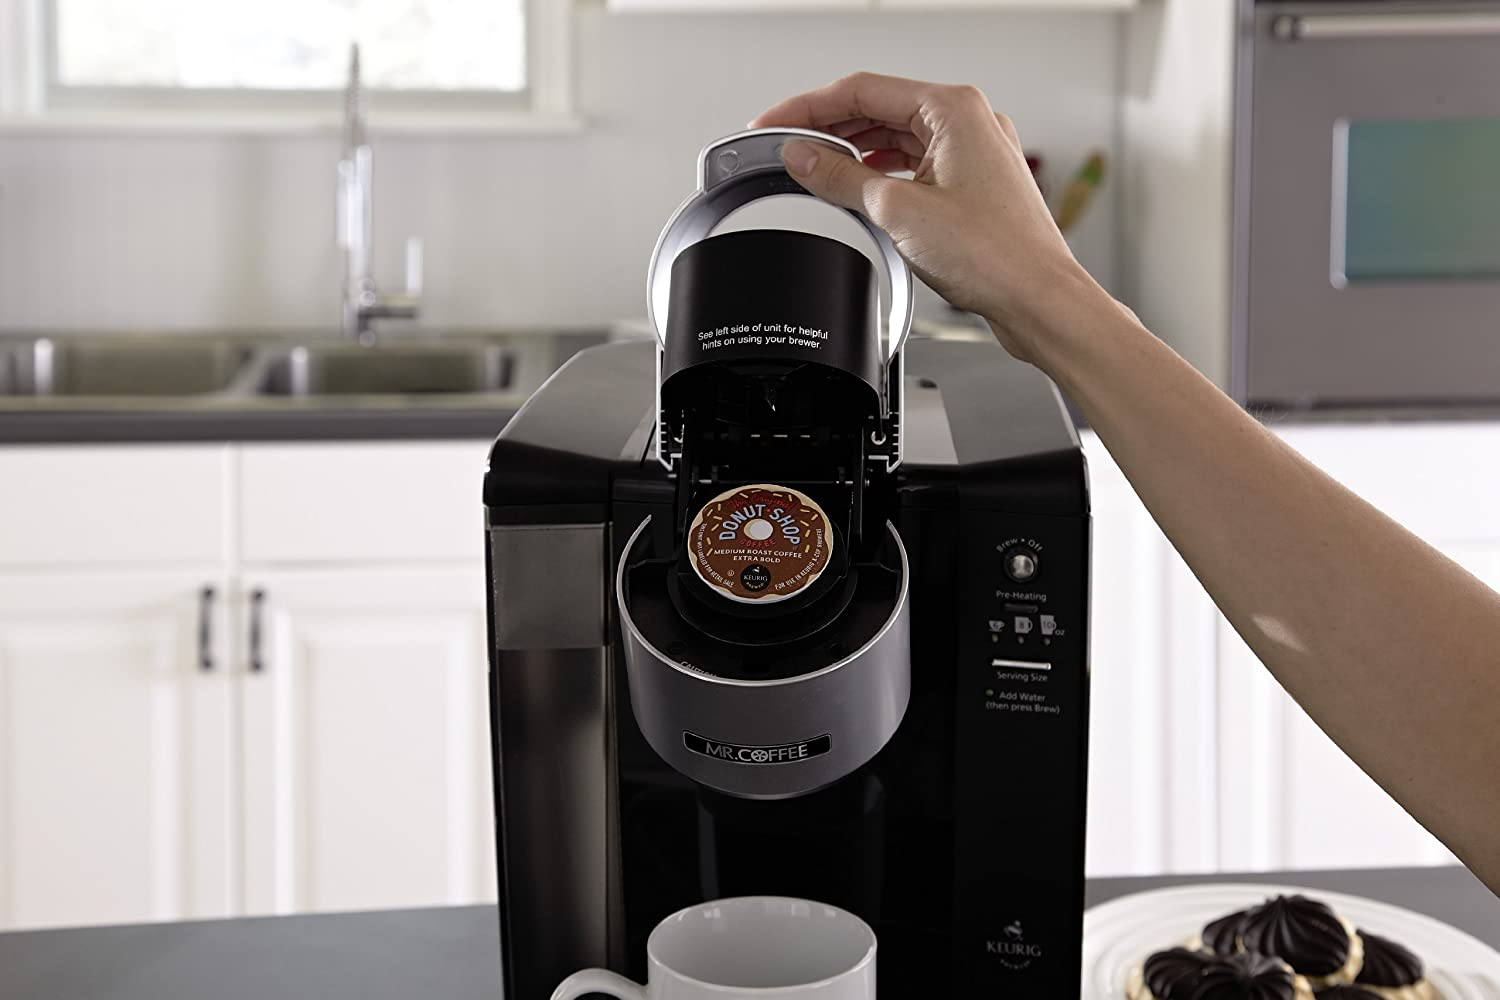 Mr. Coffee BVMC-KG6-001 Coffee Maker K-Cups